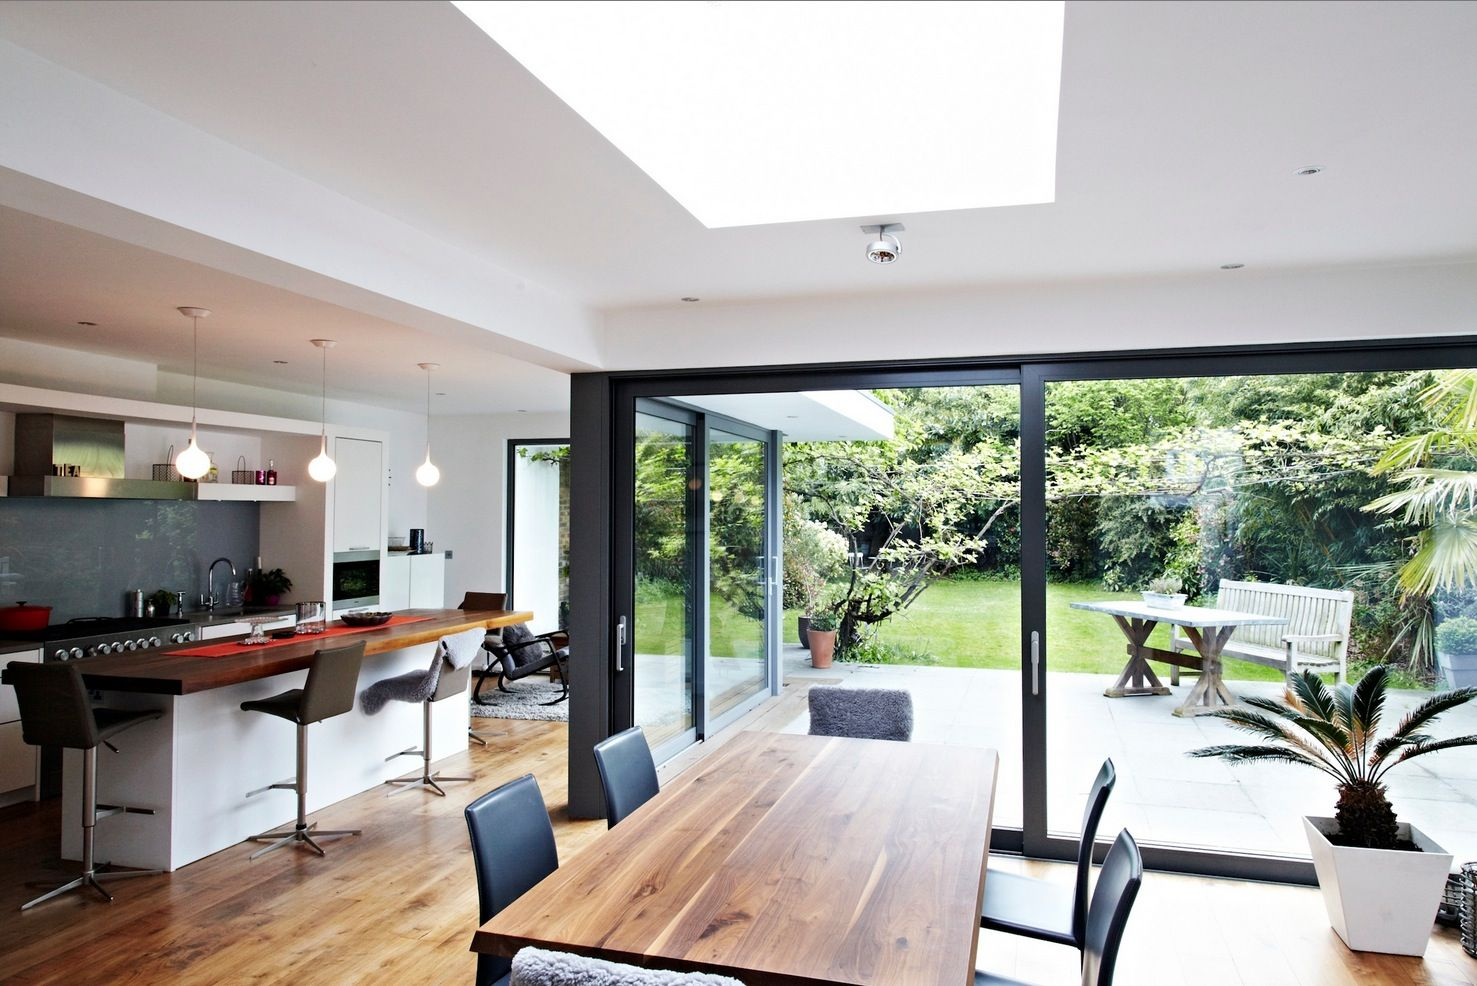 Living Room Extensions Interior Captivating Httpcdn.homedesigningwpcontentuploads201308Kitchen . Decorating Design